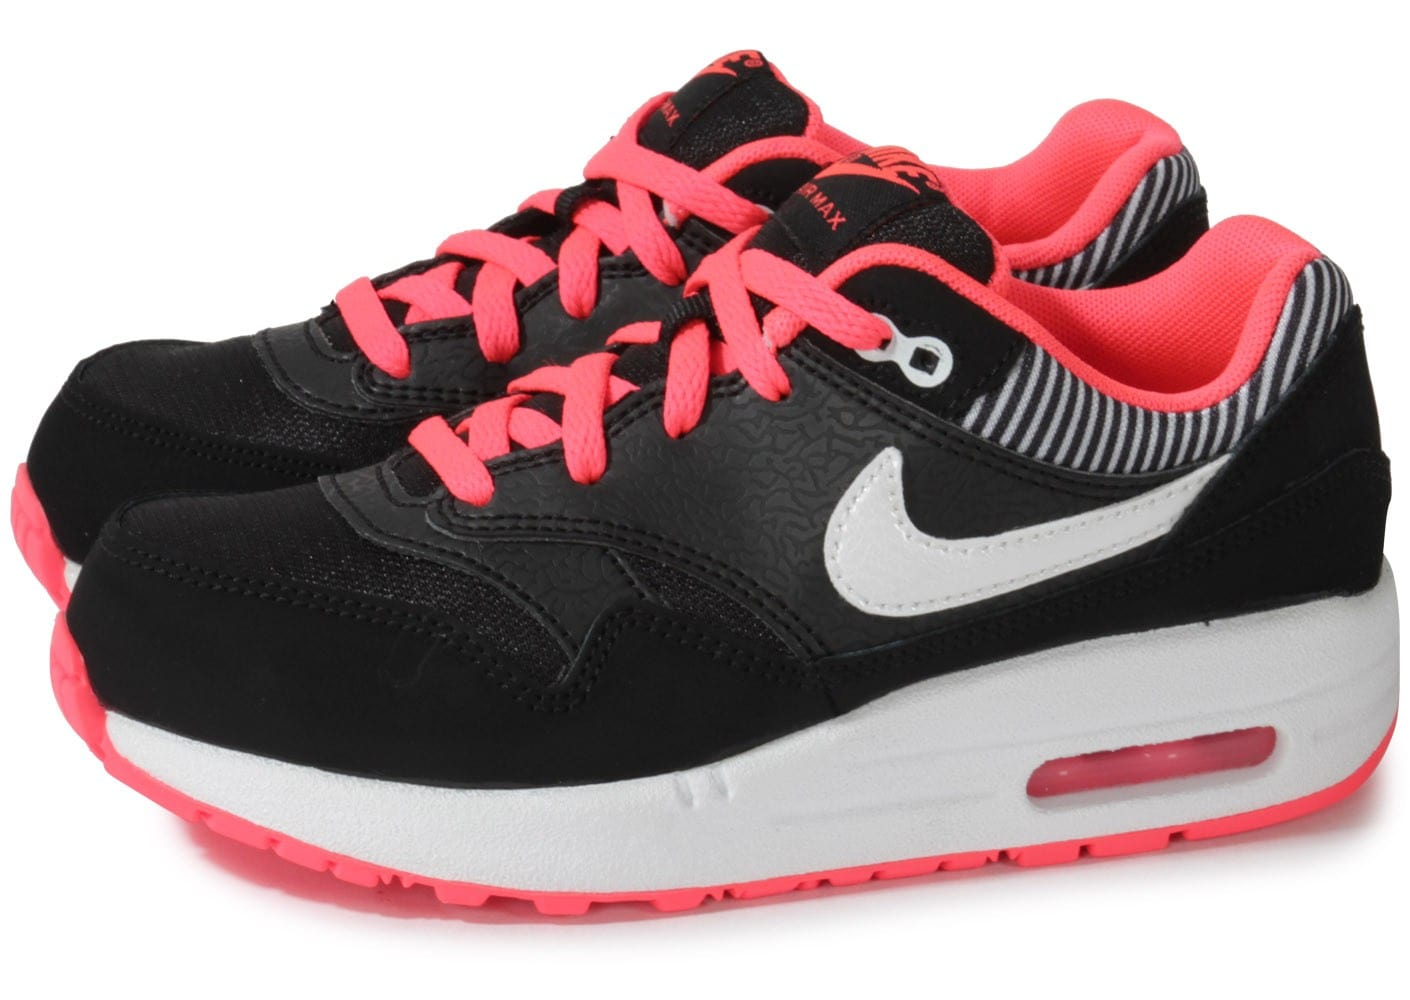 Nike Air Max 1 Enfant Noire Rose Chaussures Chaussures